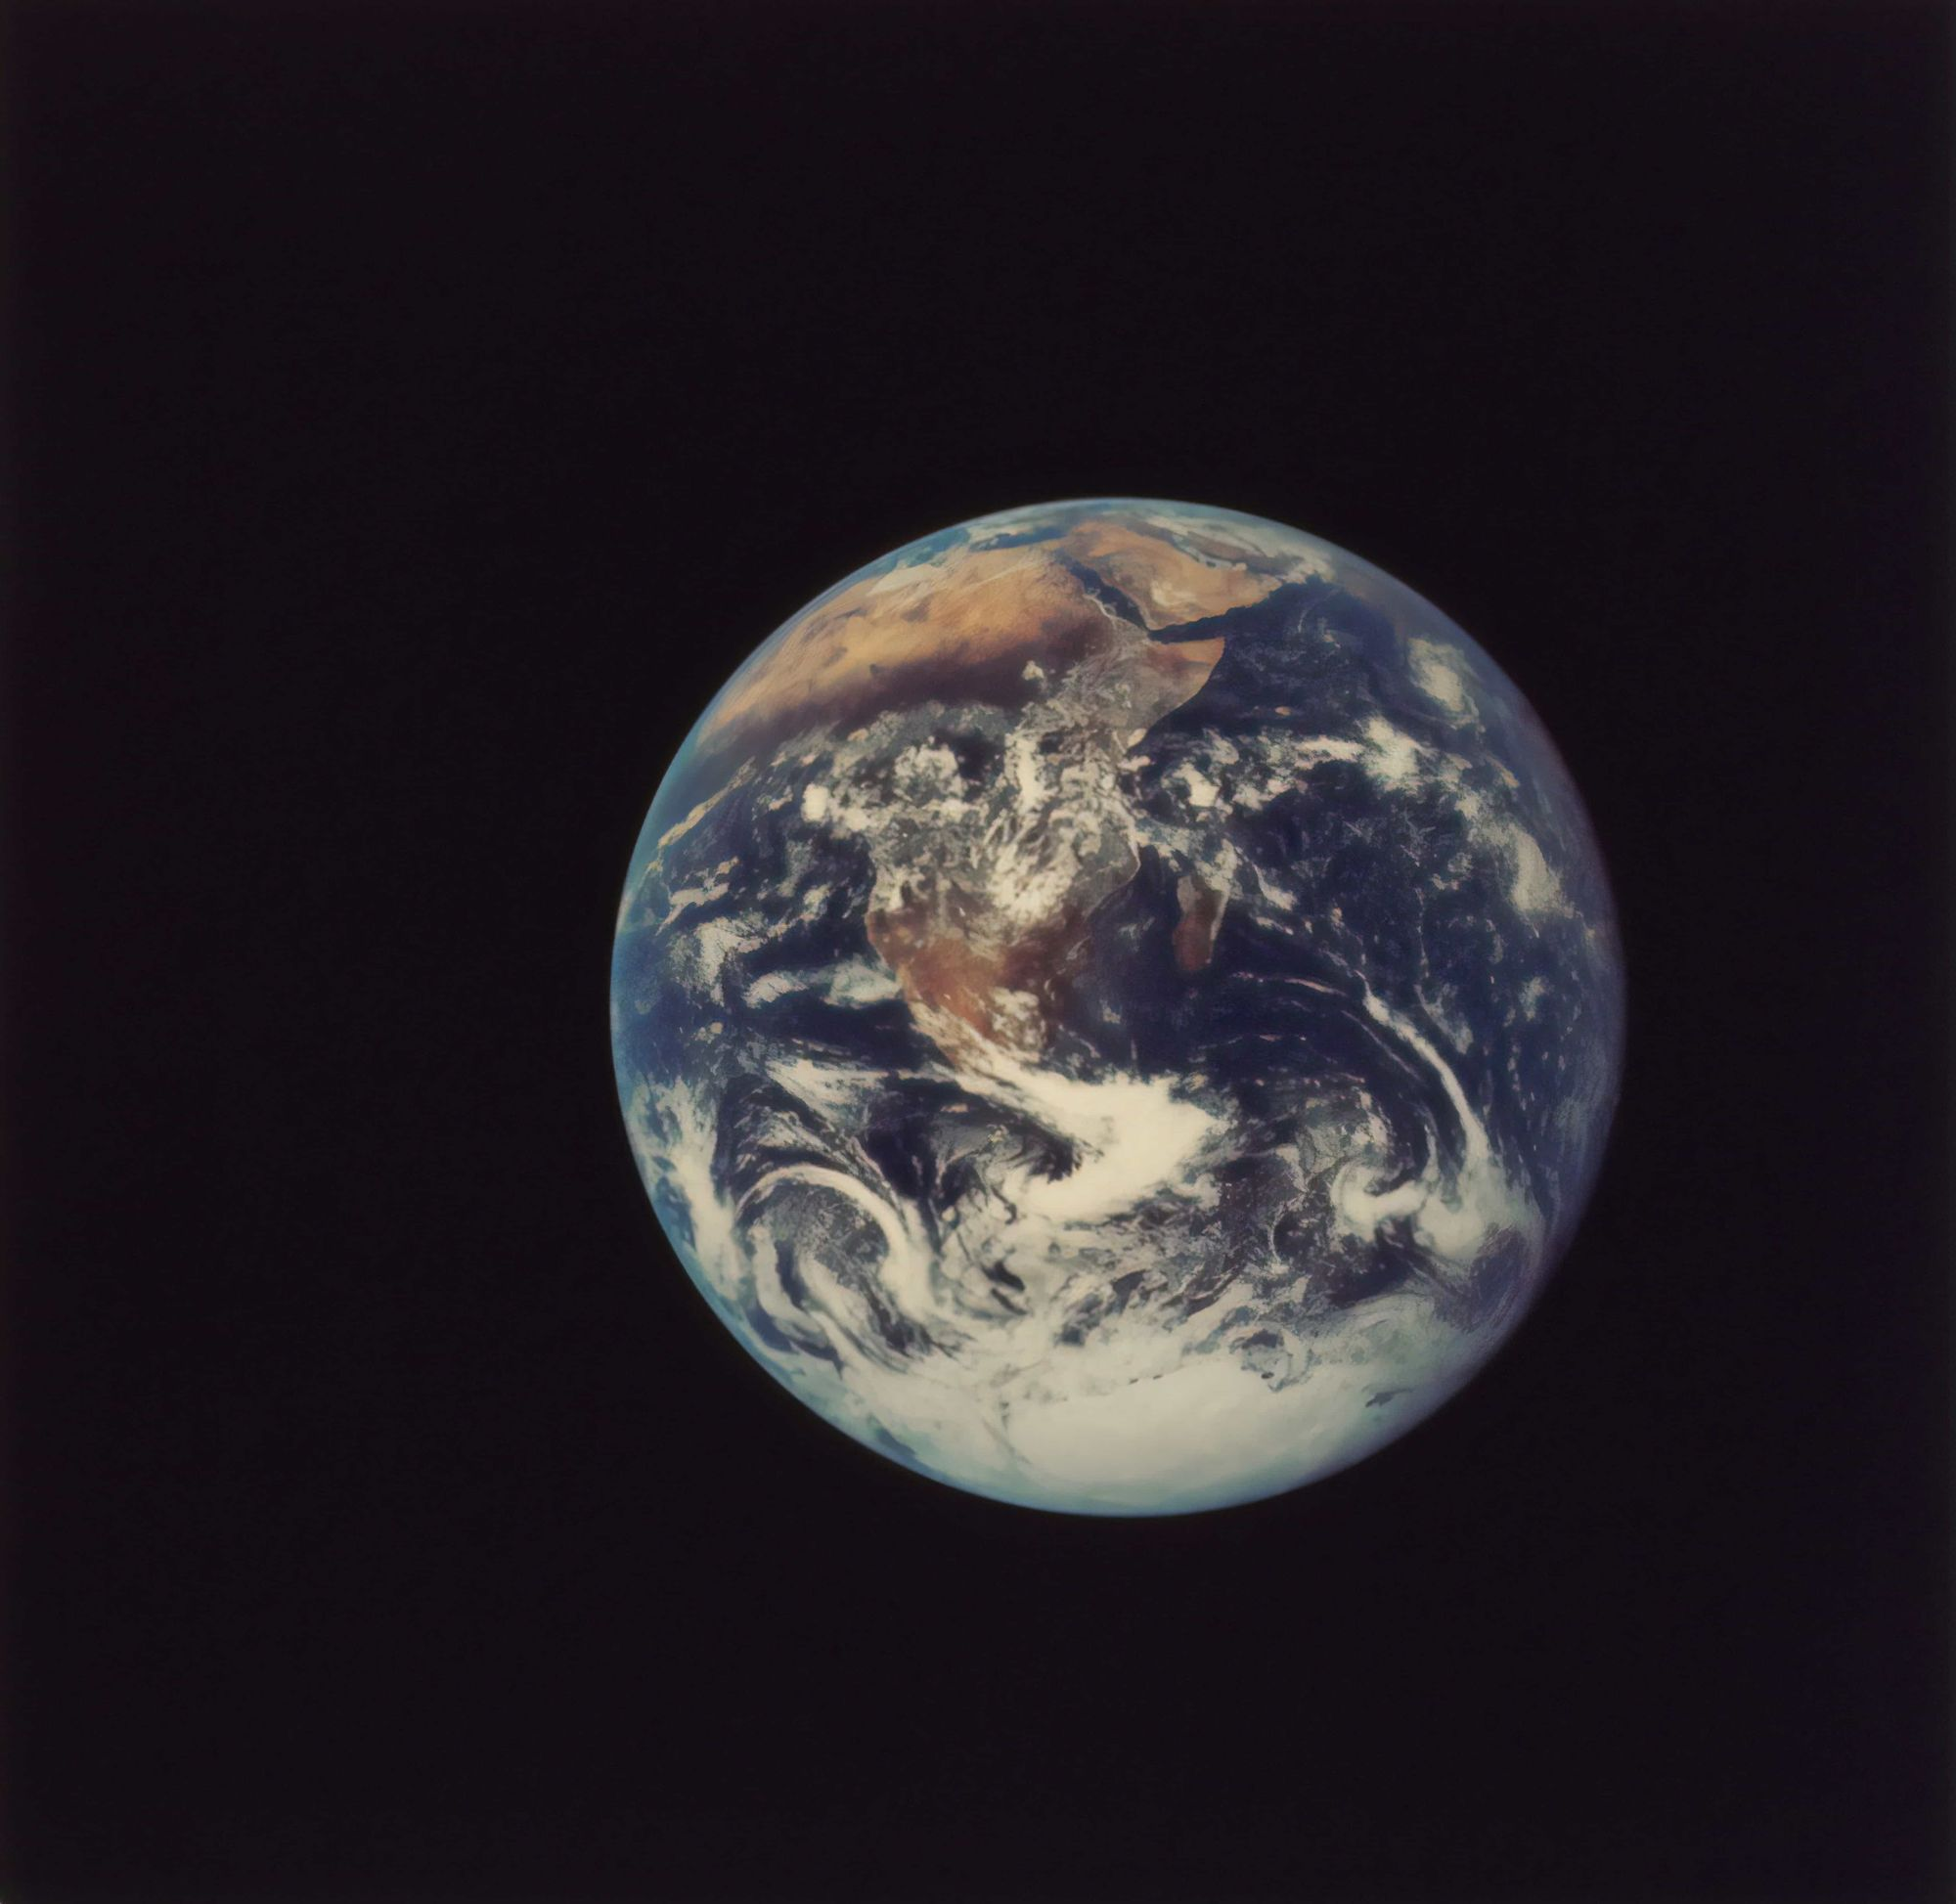 The Earth captured in 1972 from Apollo.